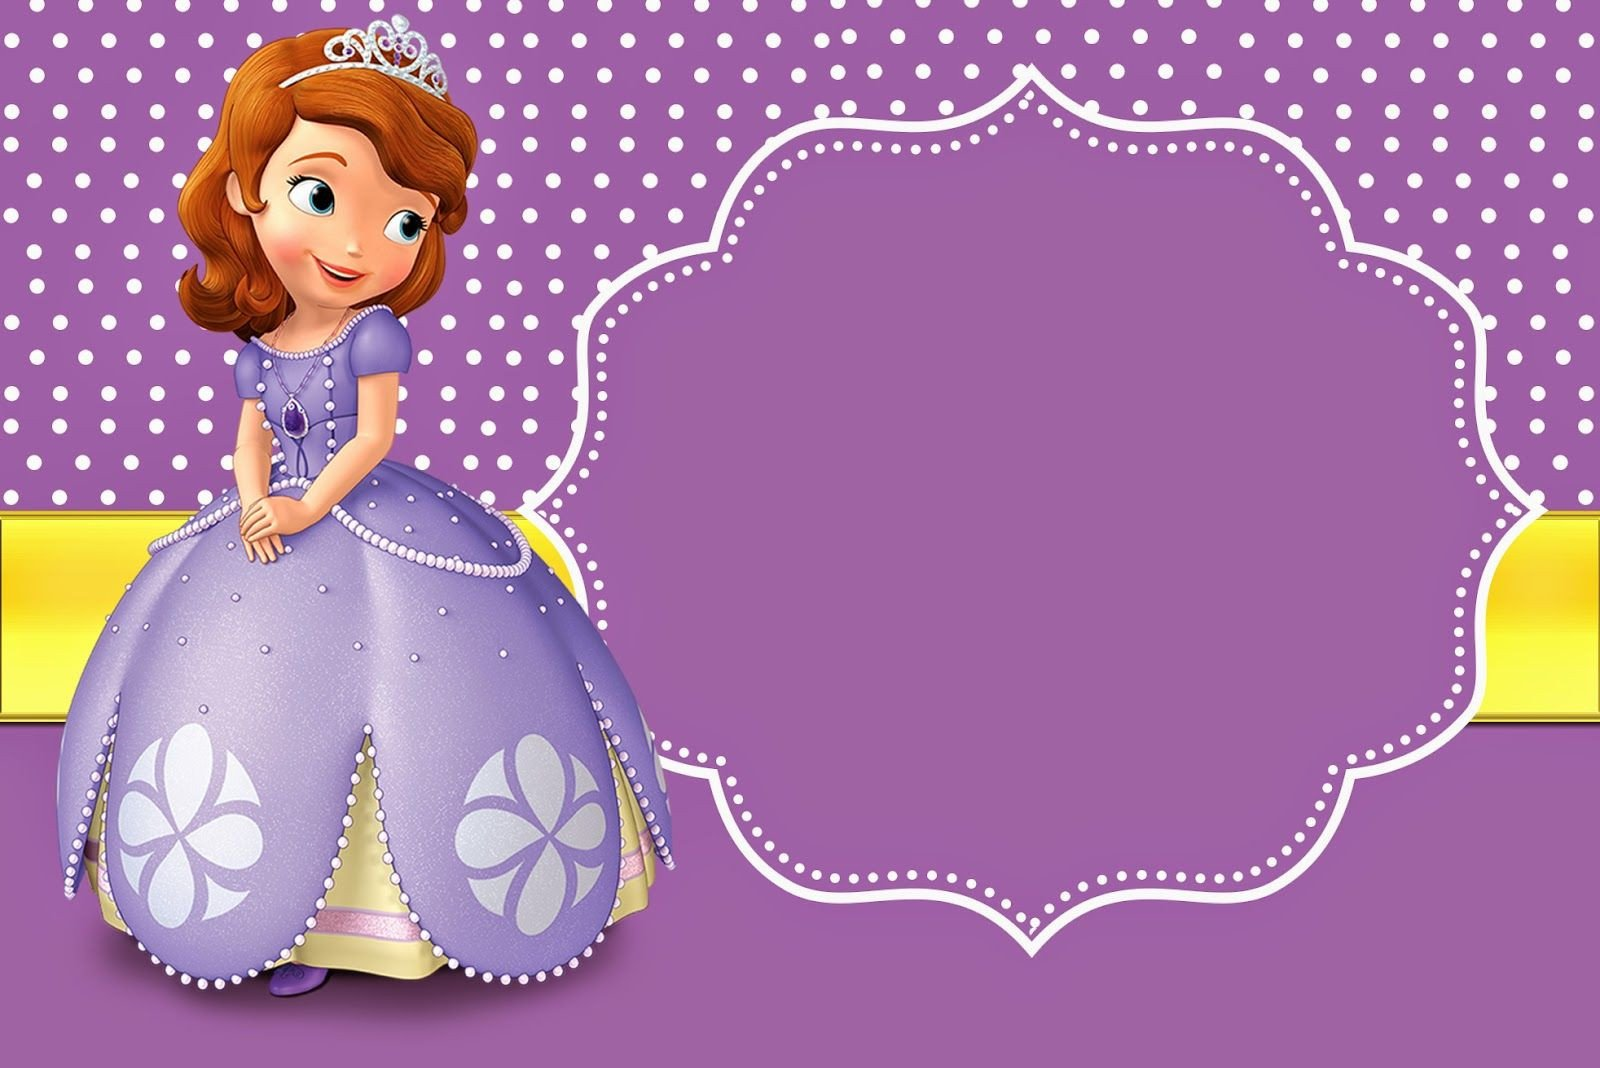 Sofia the First Invitation Templates sofia the First Free Printable Invitations